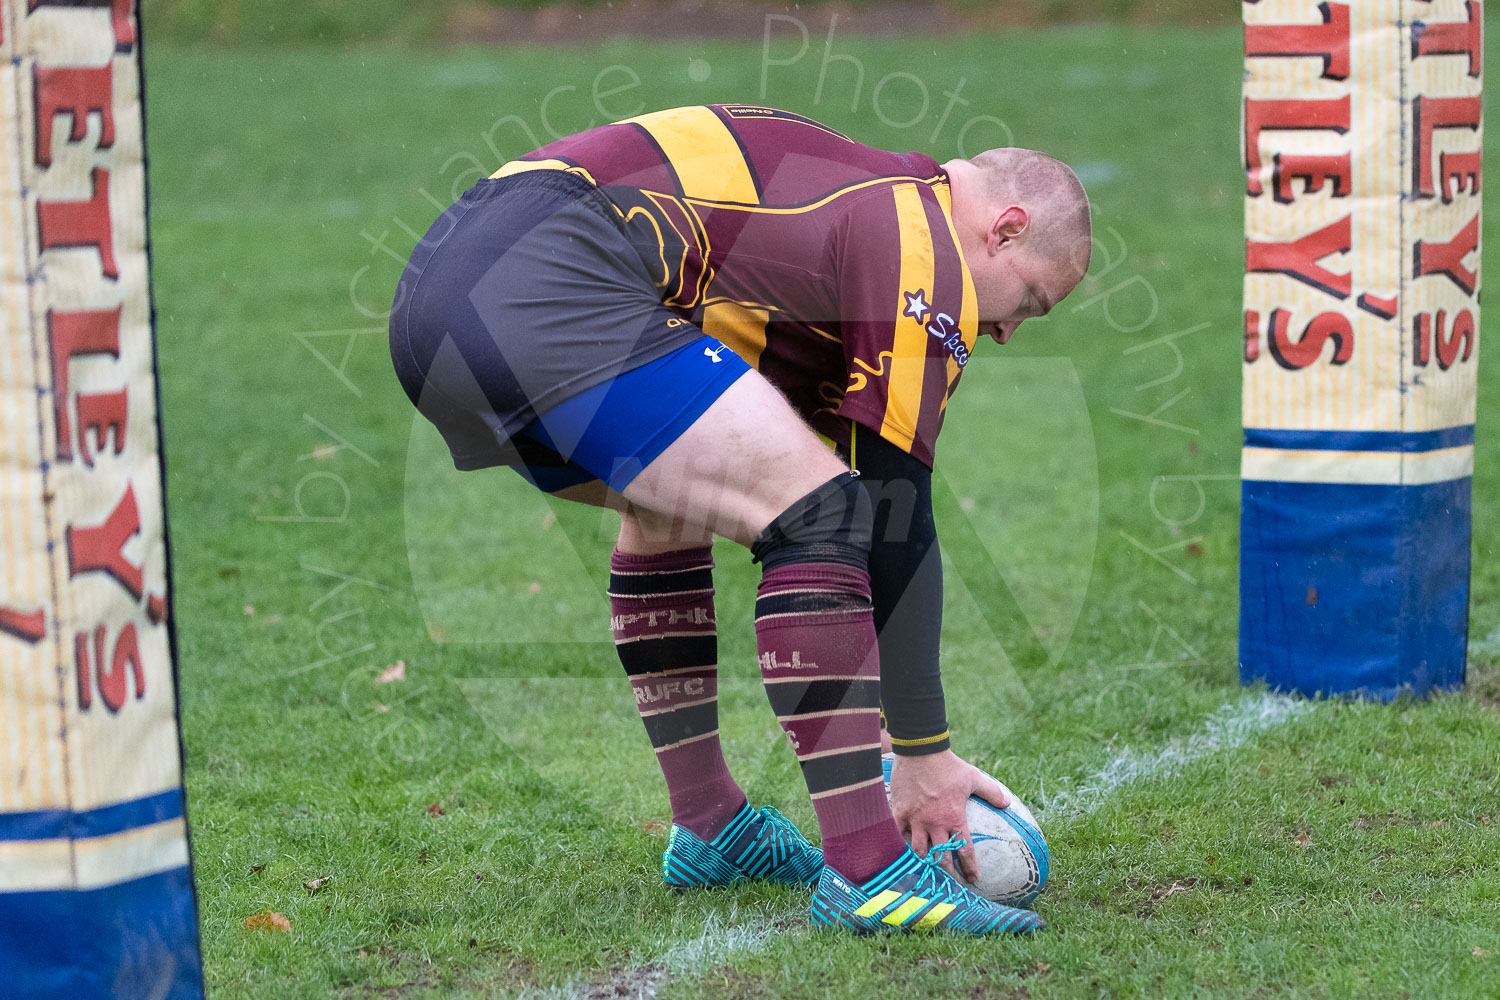 20181027 Amp Extras vs St Neots 2nd XV #2644